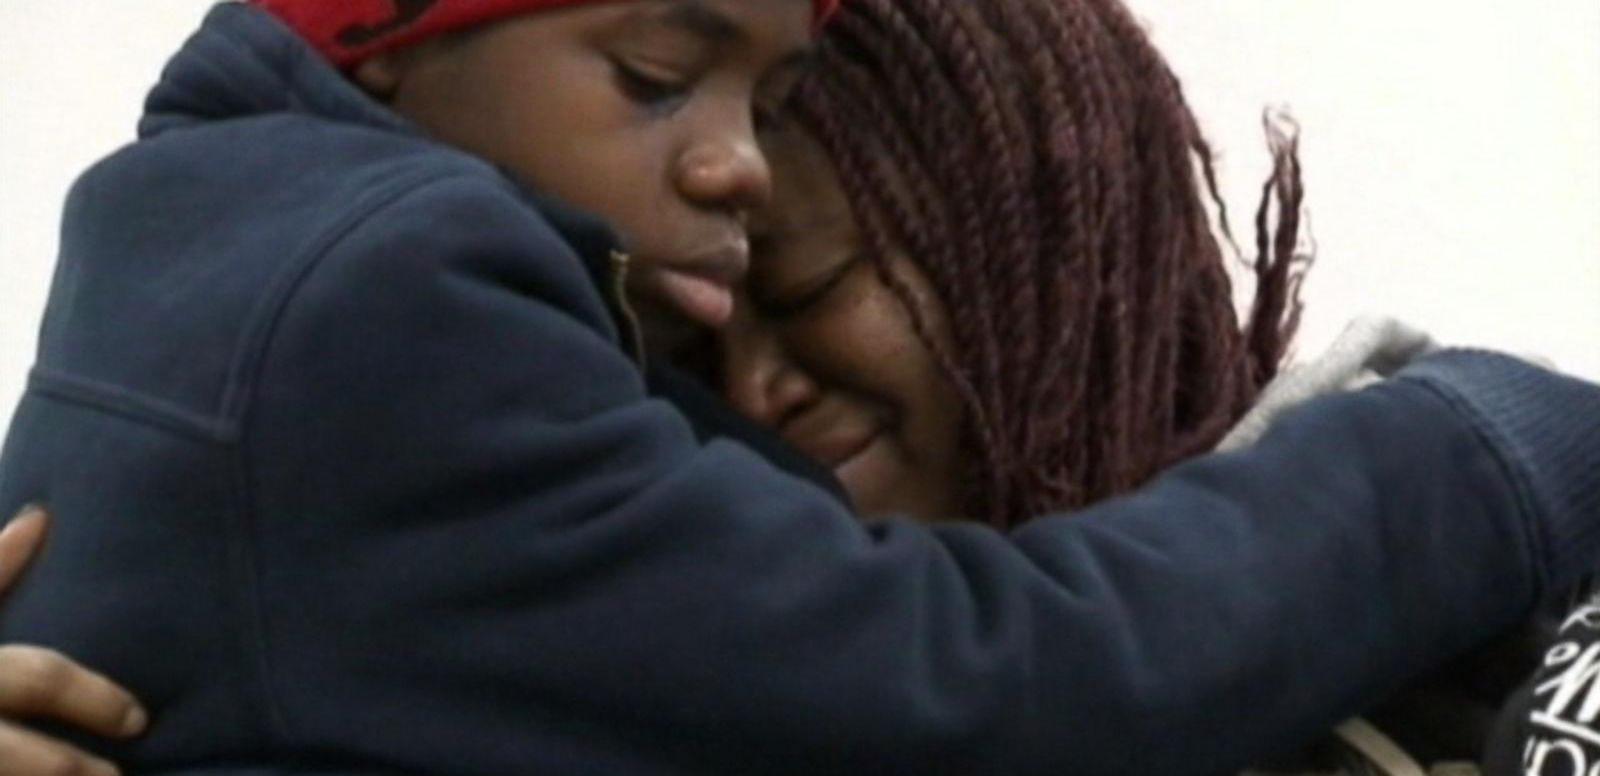 VIDEO: Teen Hidden Behind Fake Wall Rescued, Returned to Mother